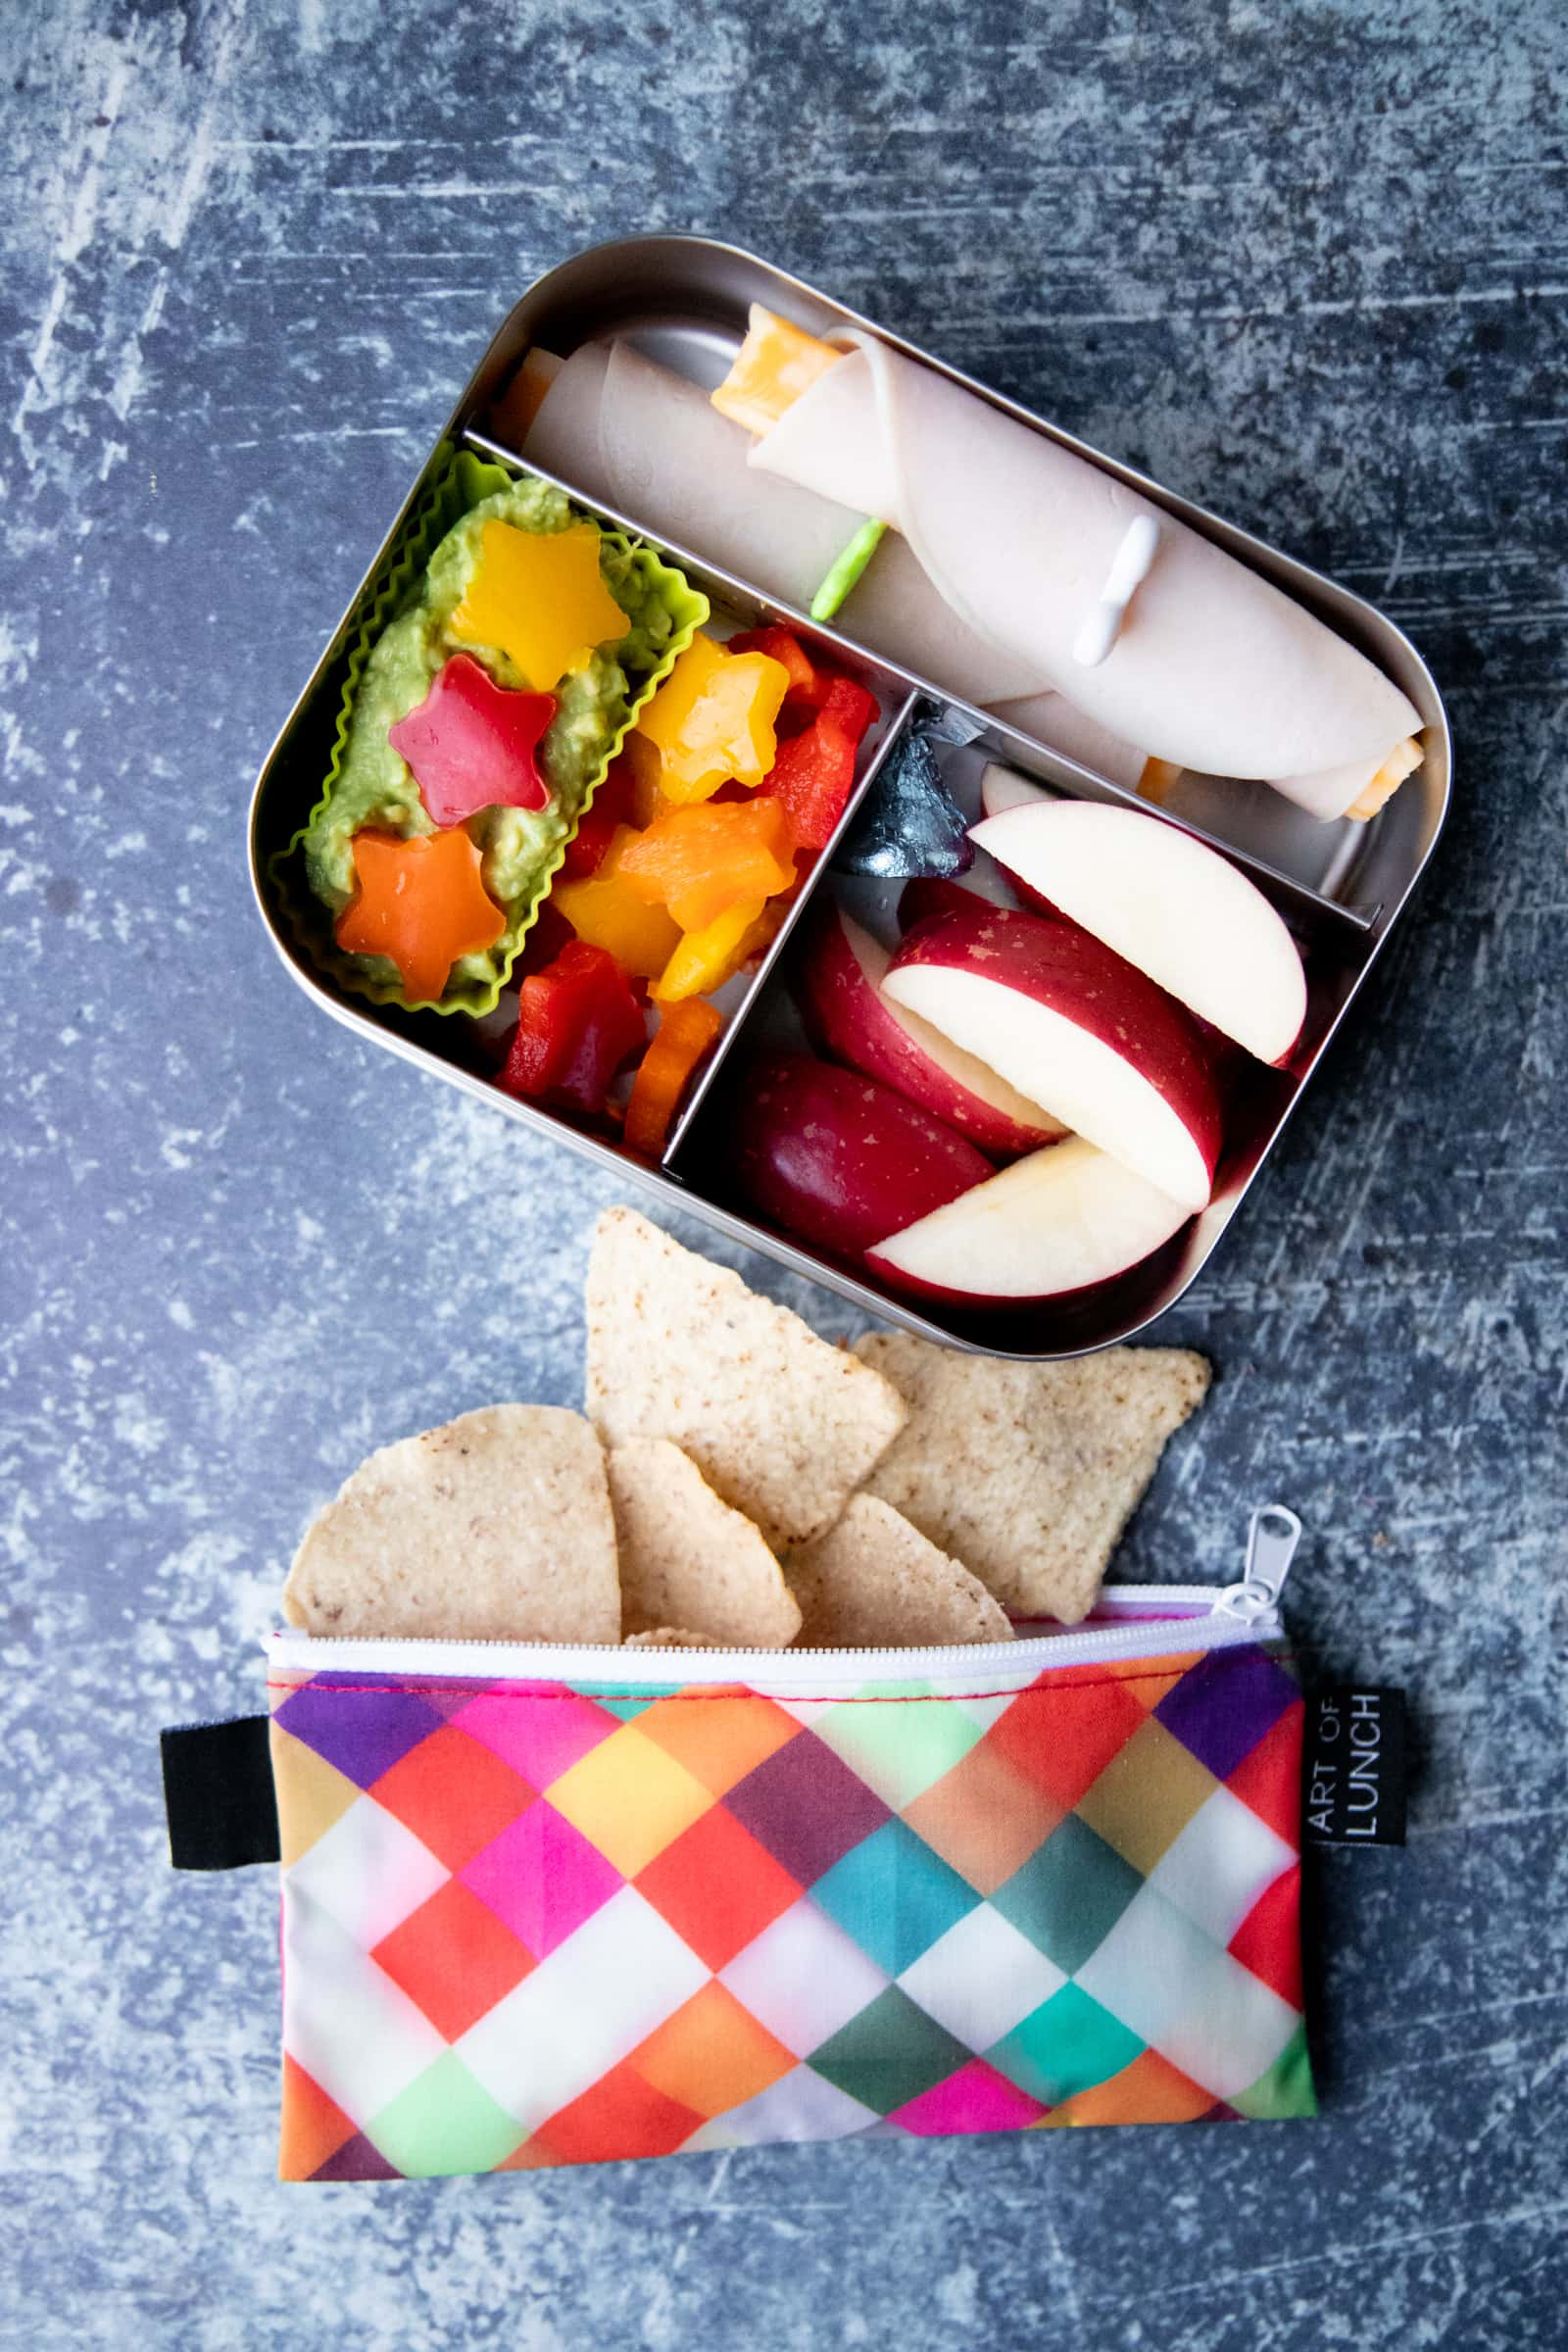 Packed lunch of apple slices, bell pepper stars, guacamole, turkey and cheese roll-ups, and a bag of tortilla chips.